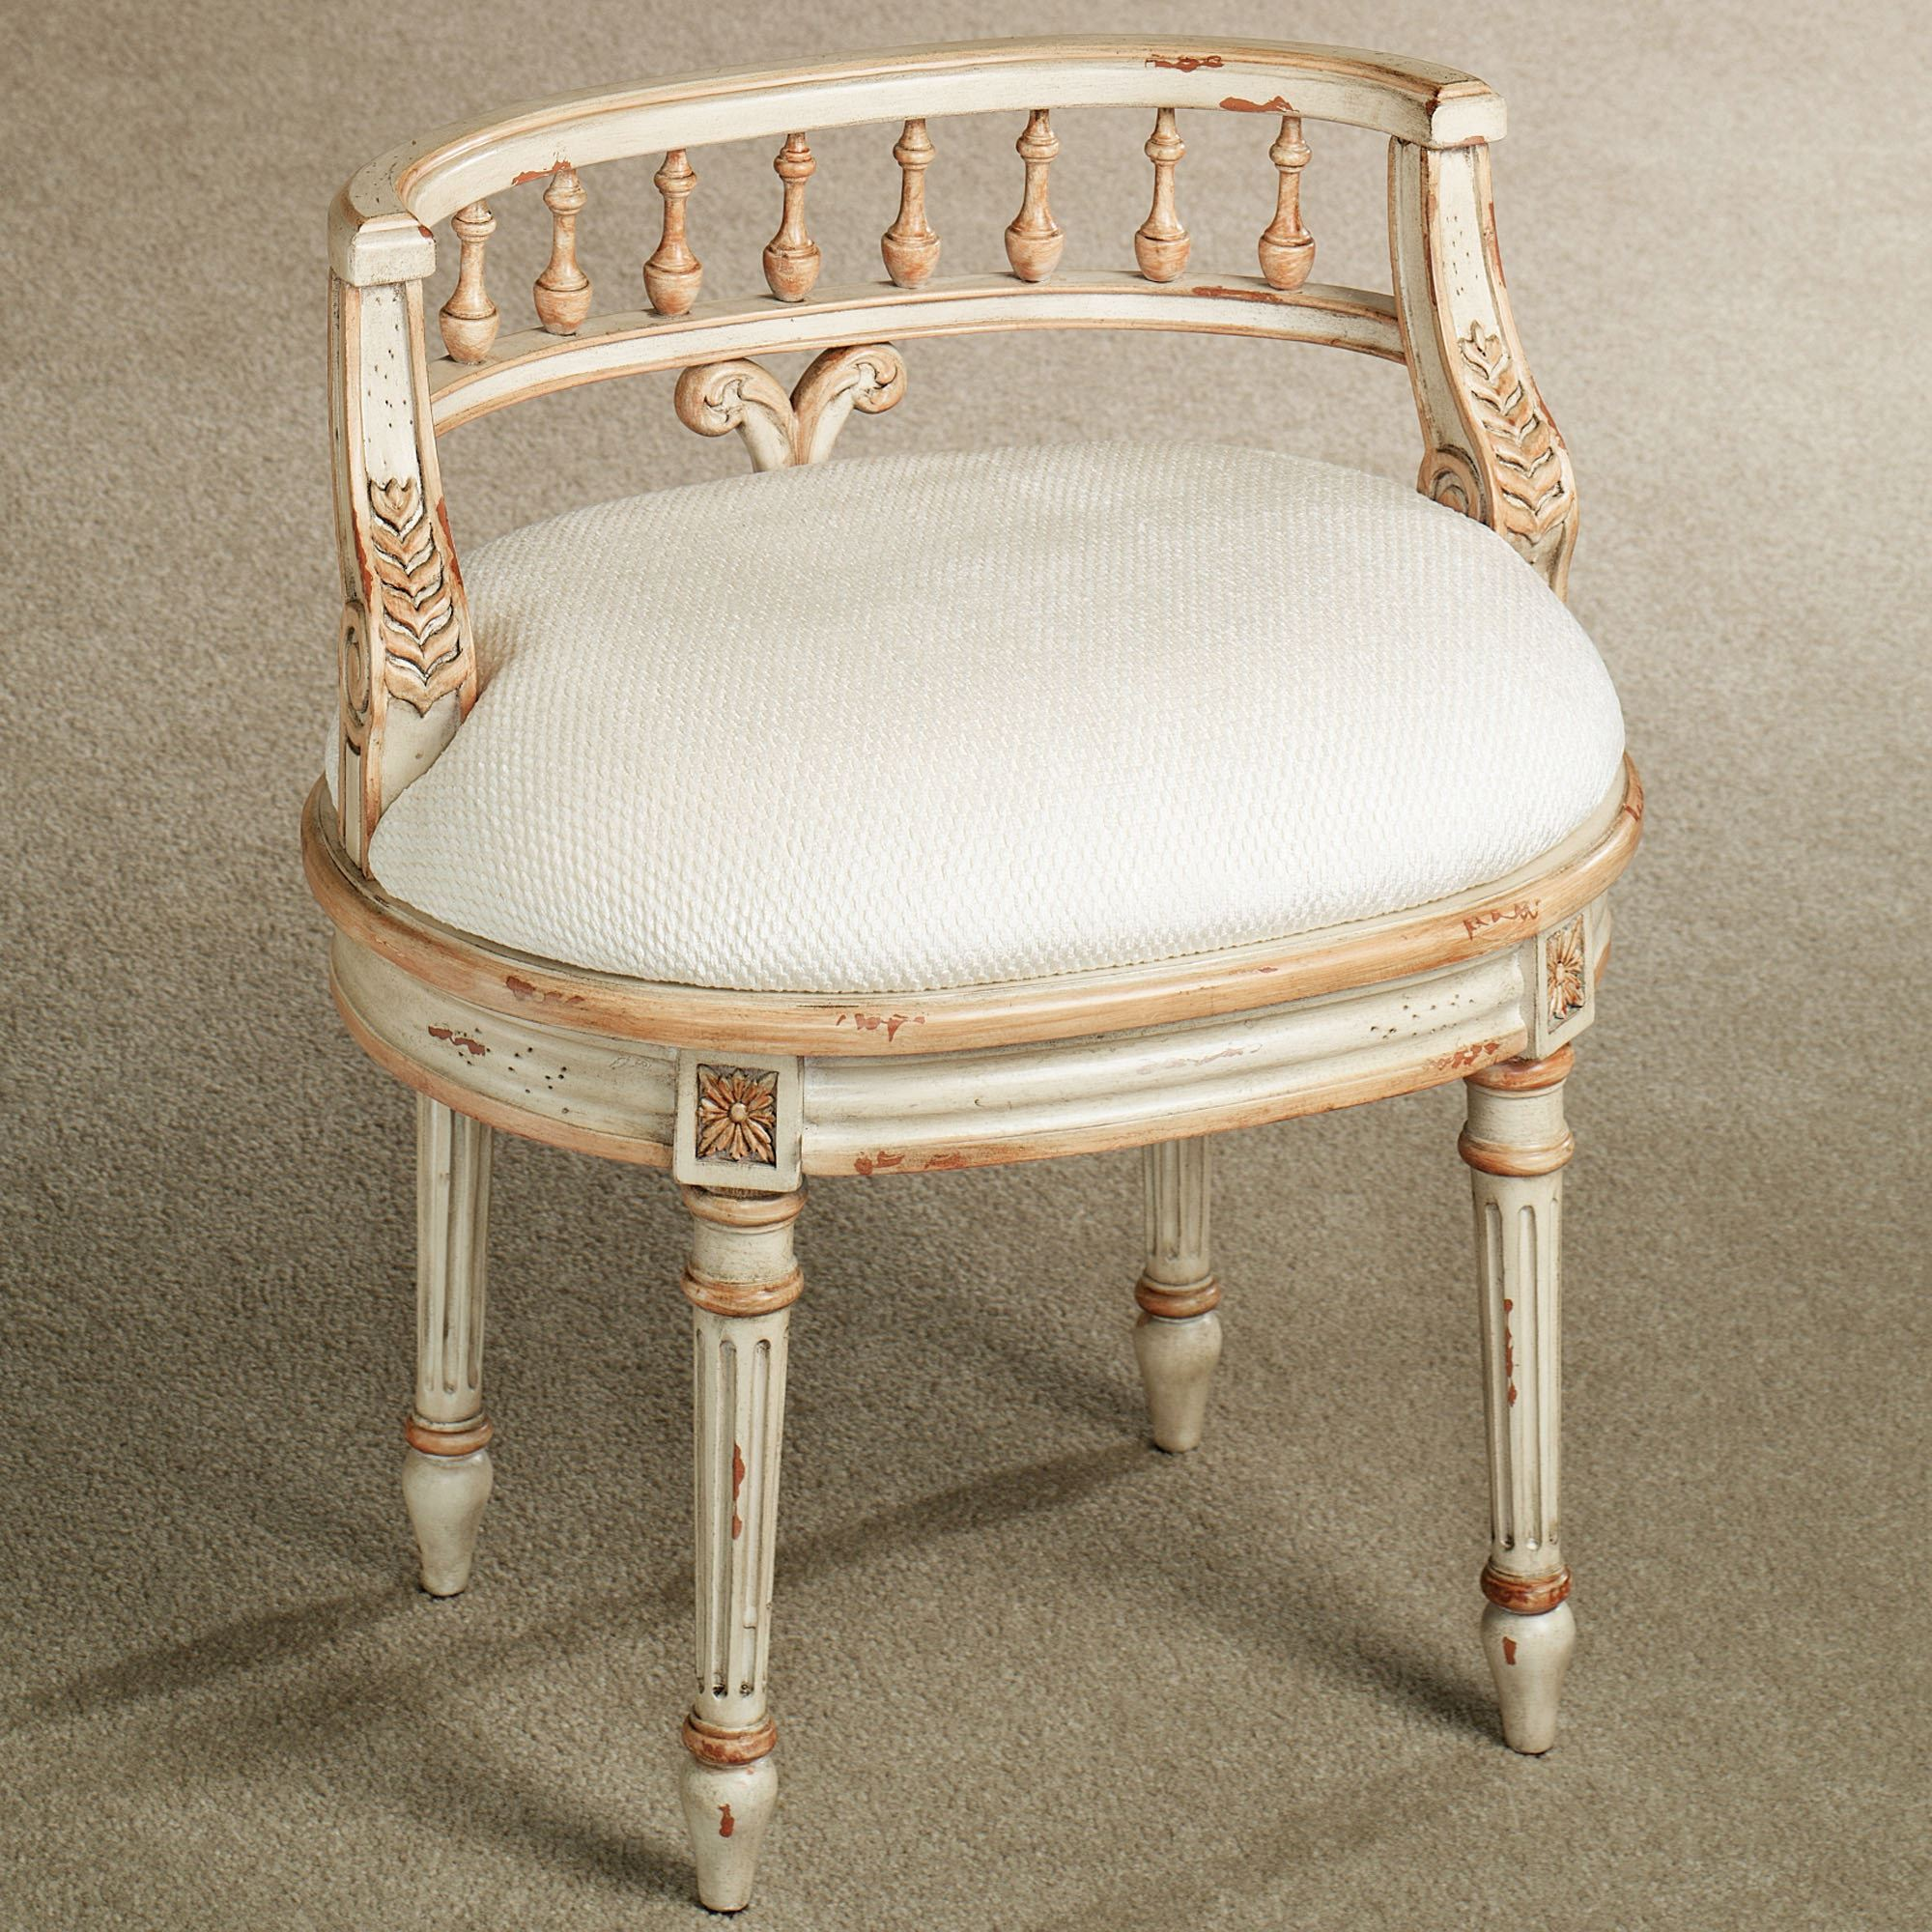 queensley upholstered antique ivory vanity chair 87968